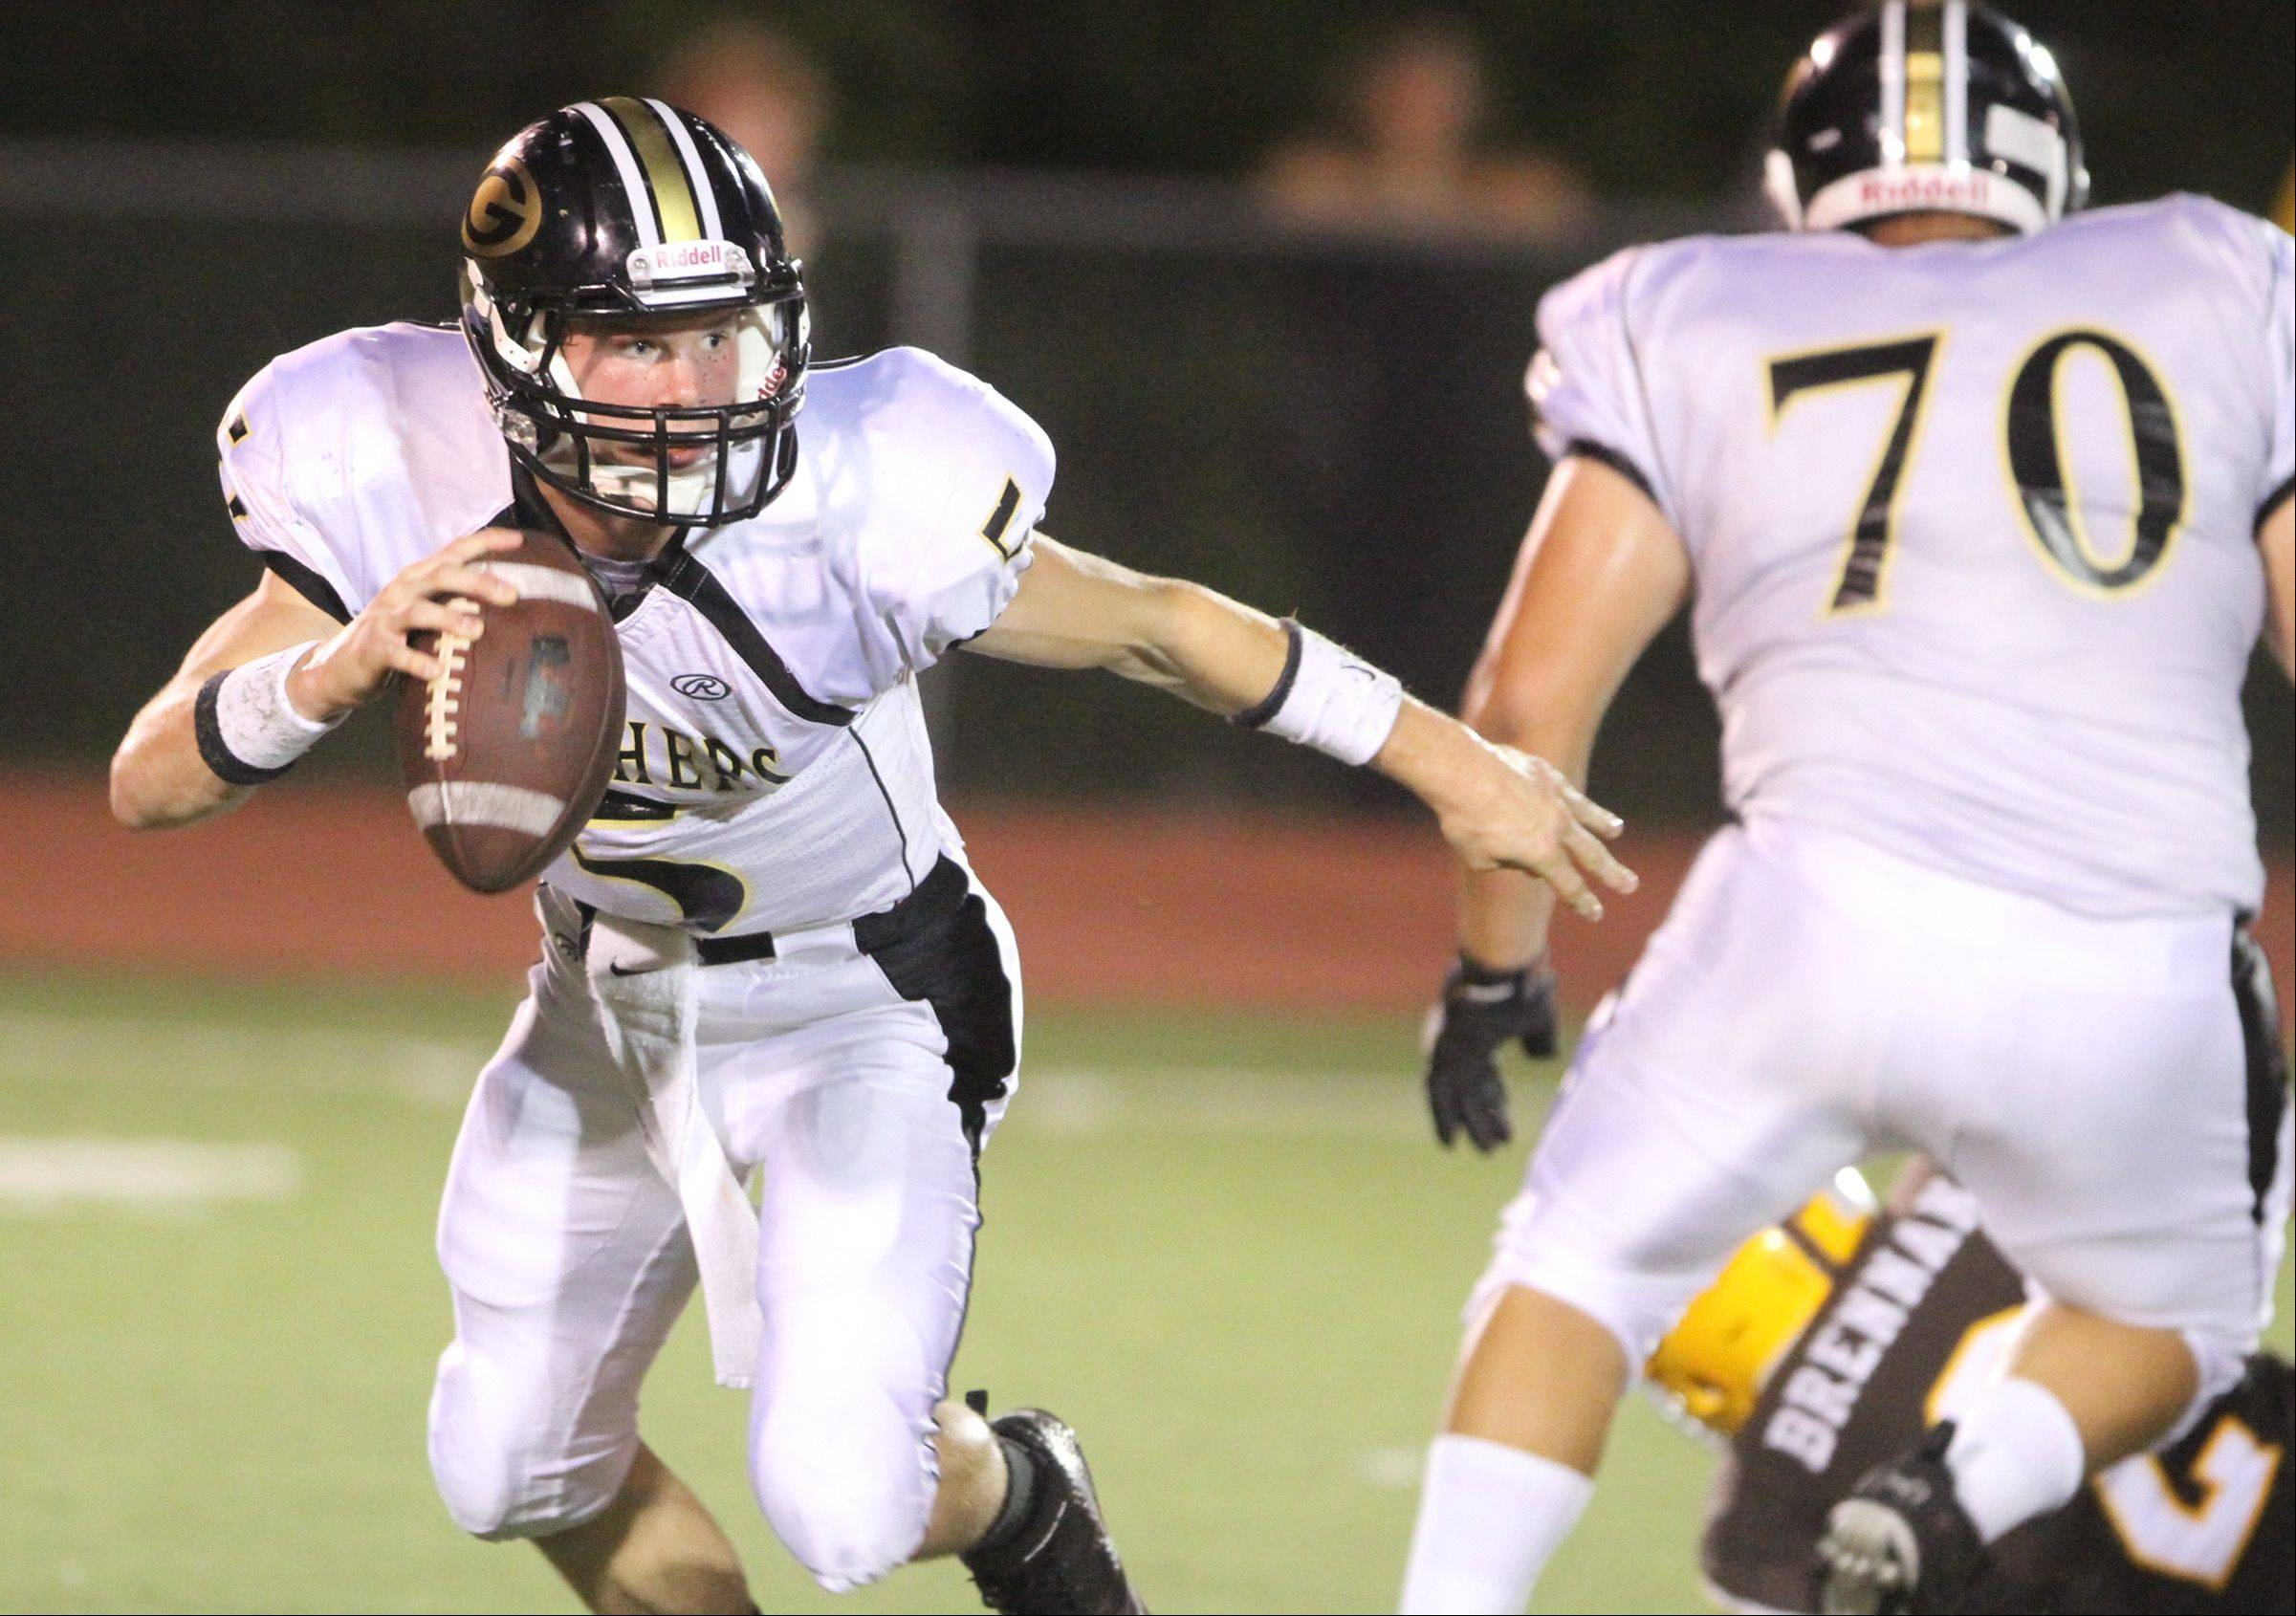 Images: Glenbard North vs. Carmel football